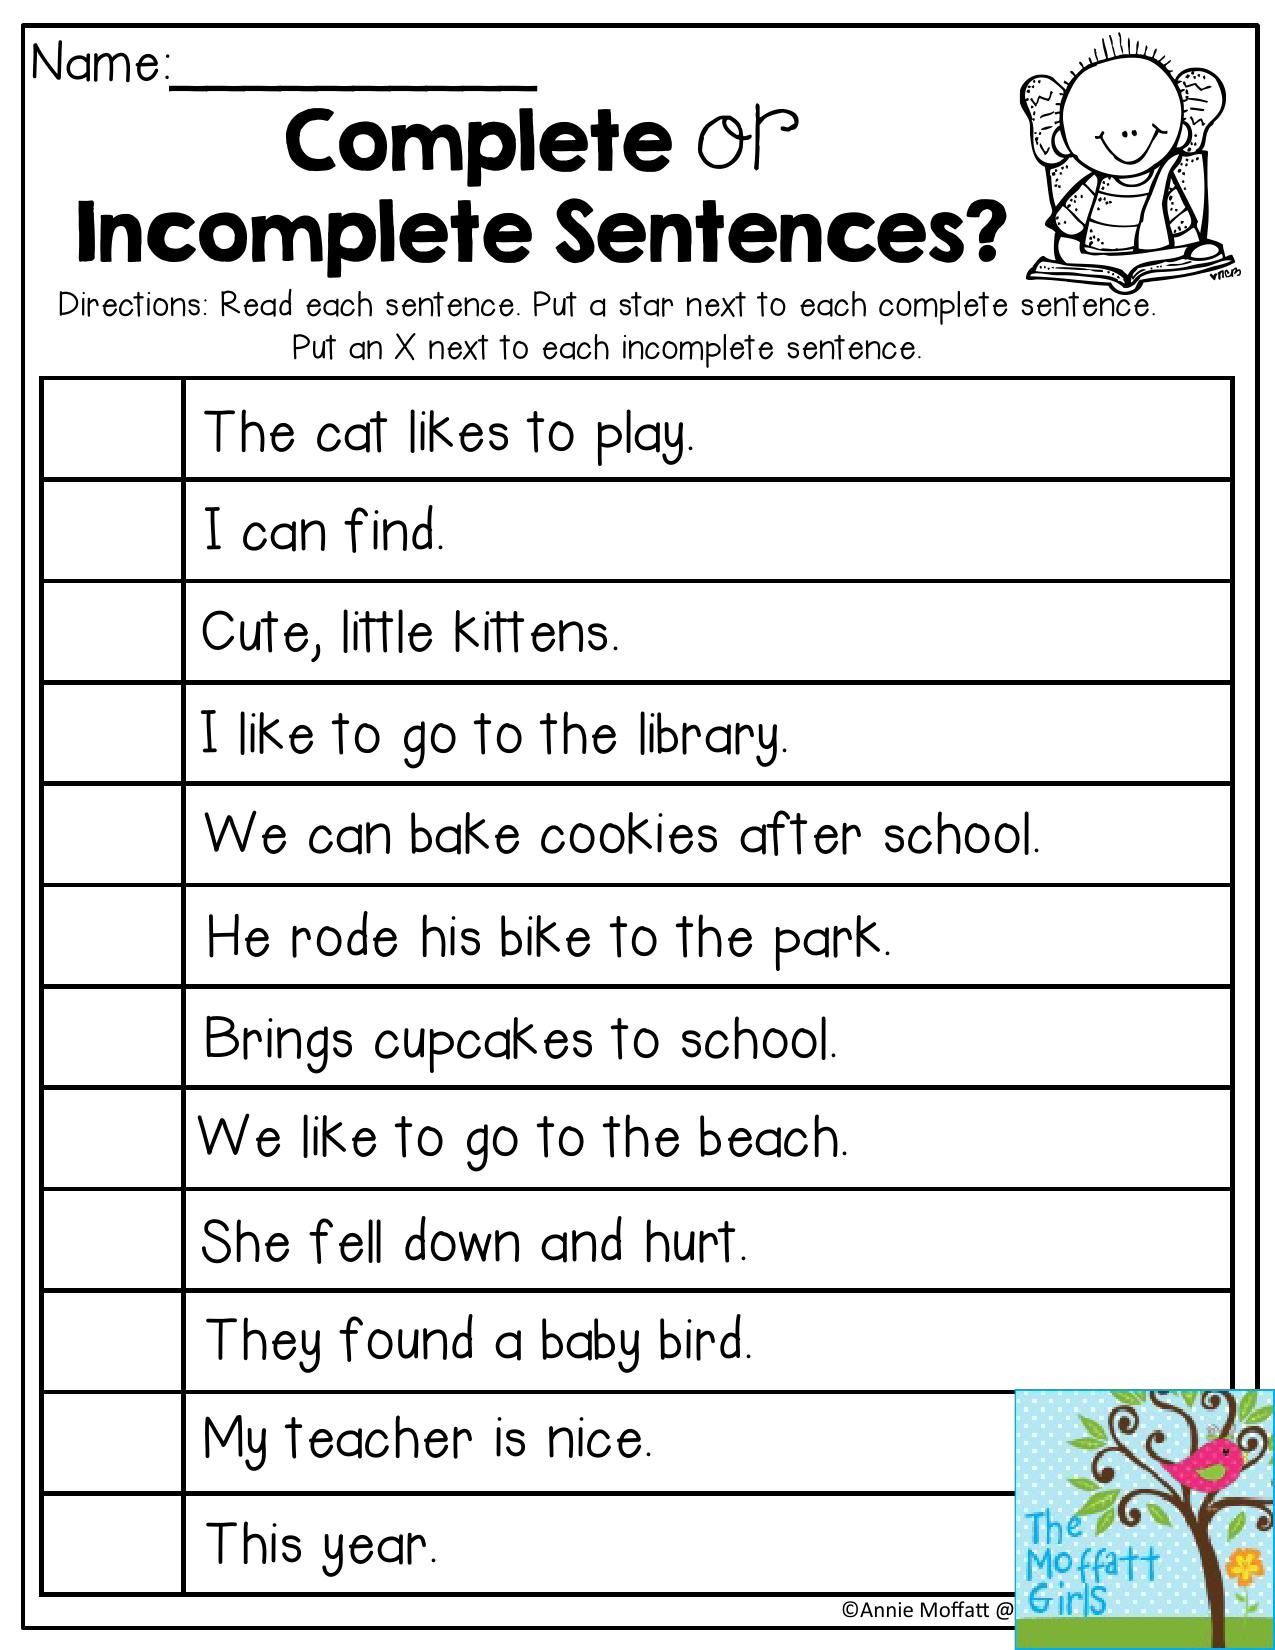 Complete Sentences Worksheet 4th Grade Plete or In Plete Sentences Read Each Sentence and